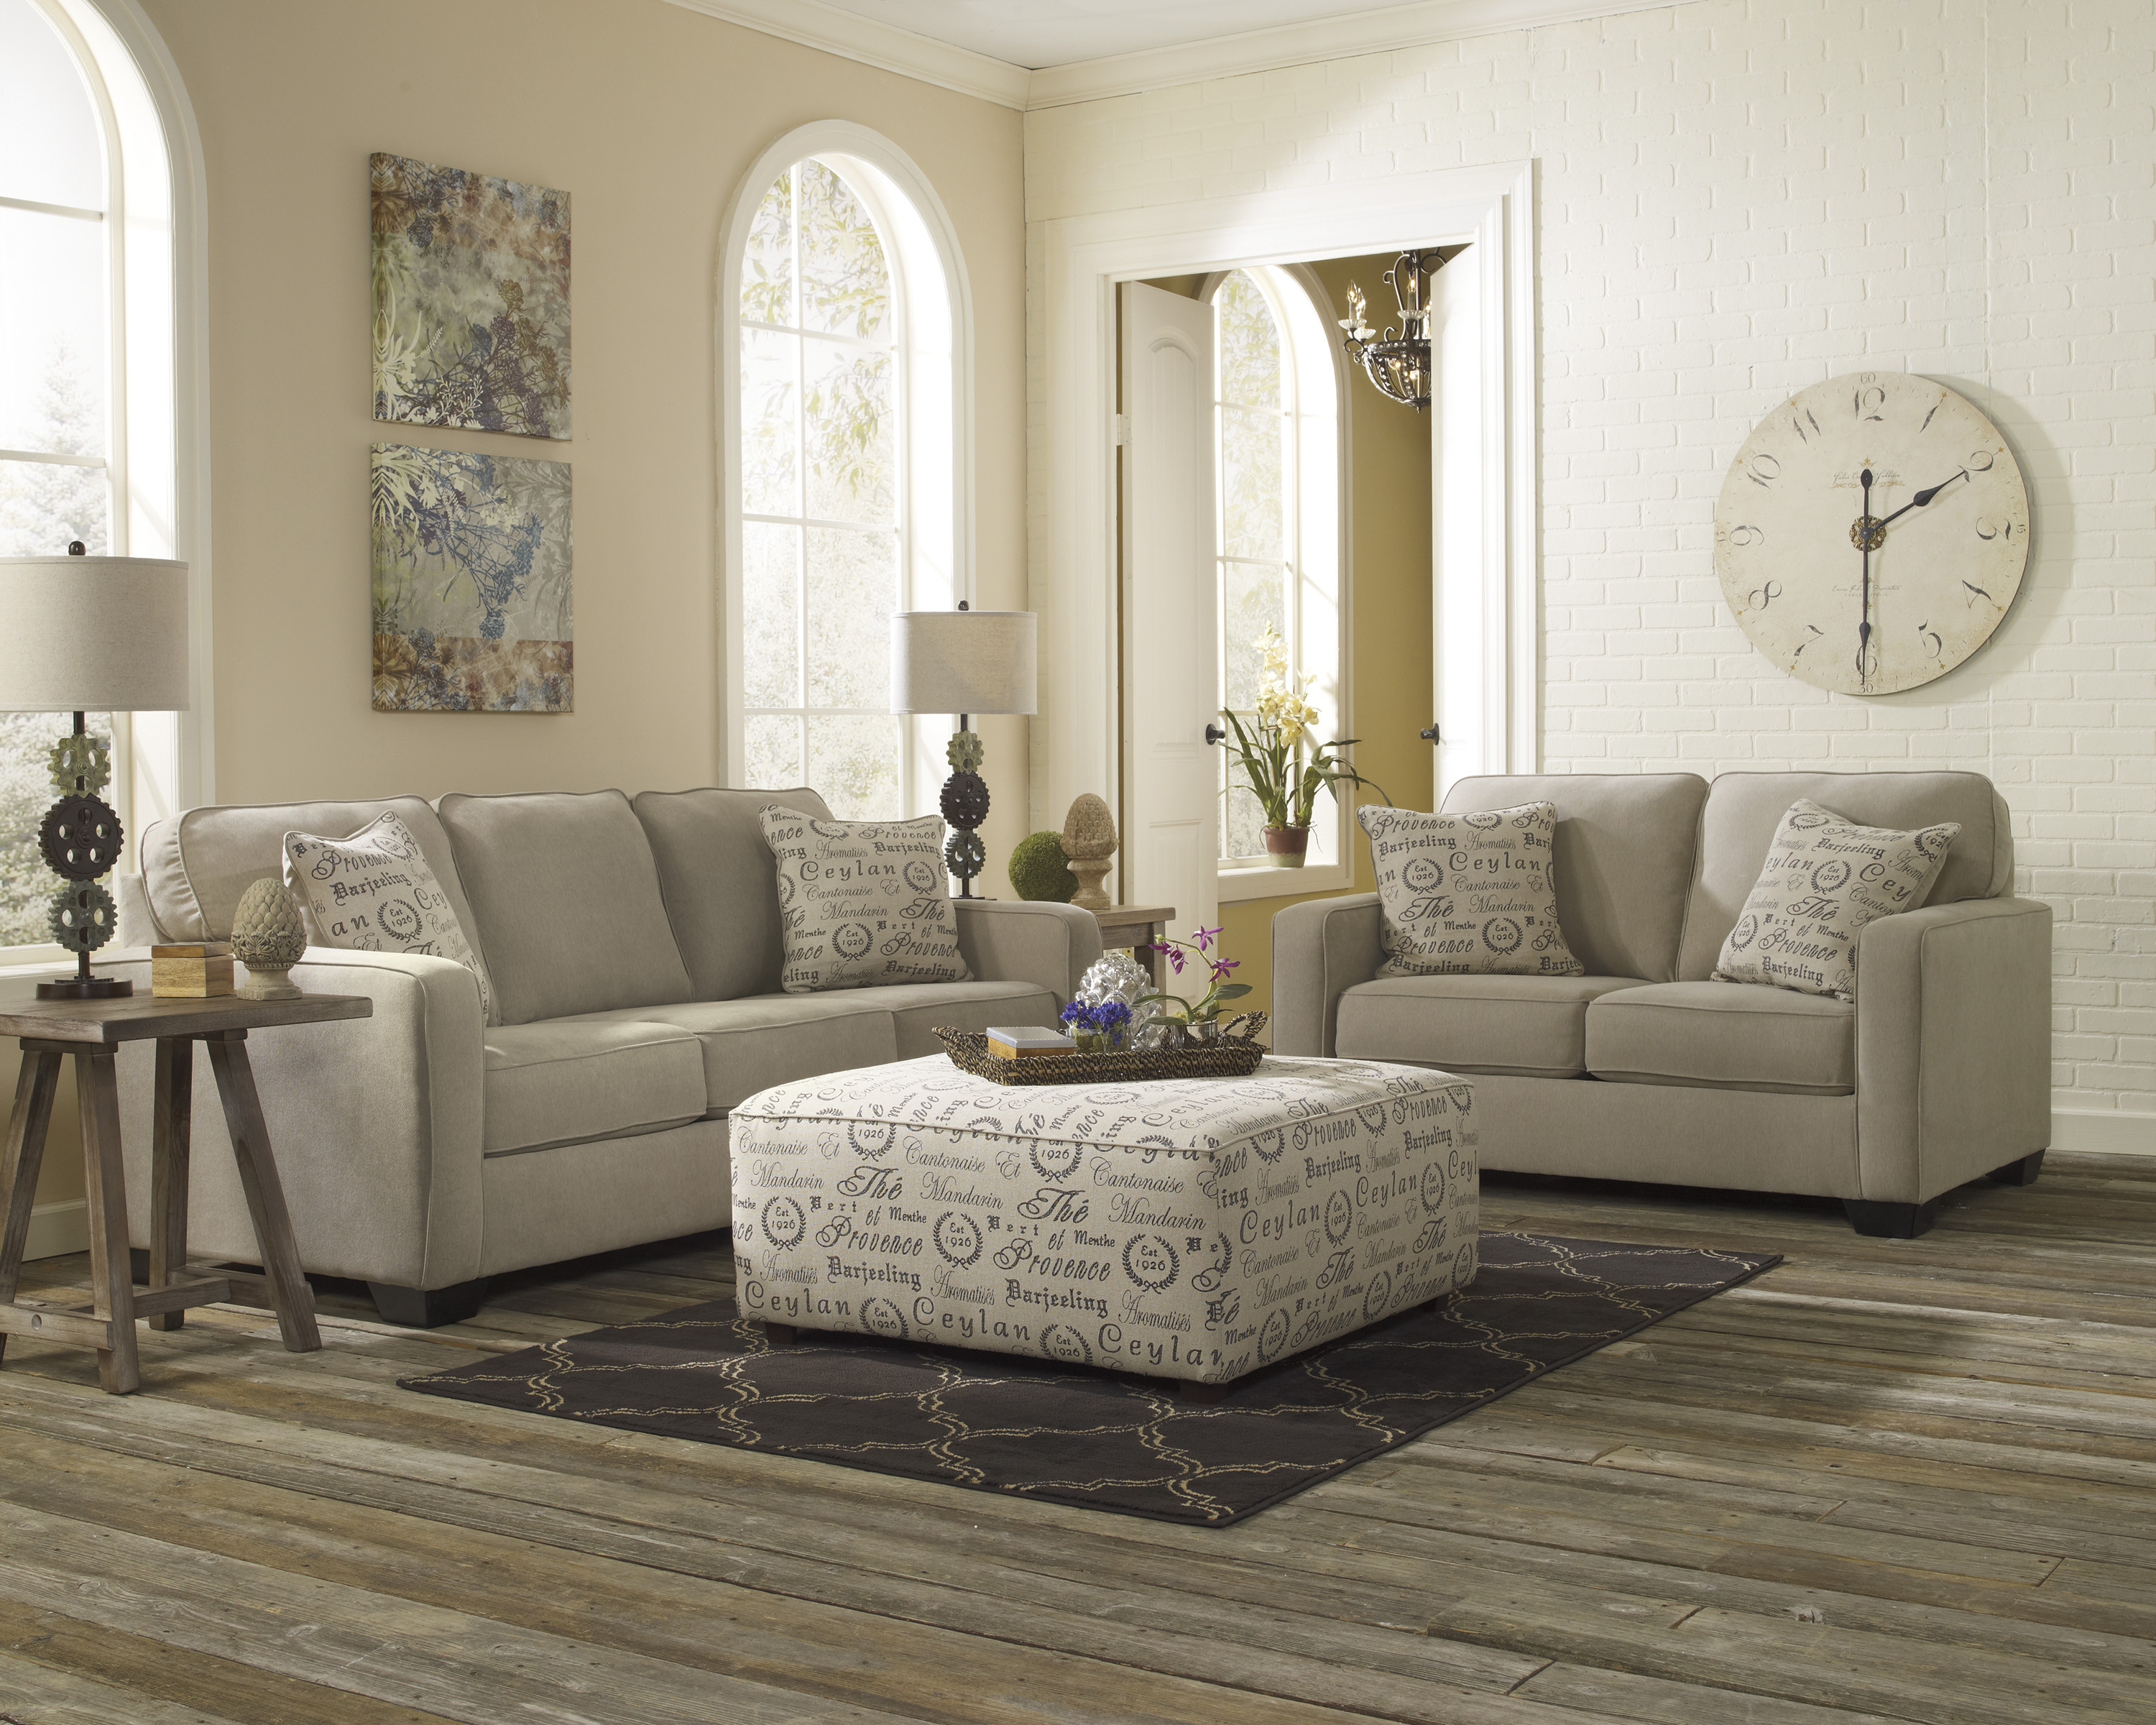 Best ideas about Living Room Couches . Save or Pin Accent Chairs ASHLEY FURNITURE ASHLEY FURNITURE FABRIC Now.